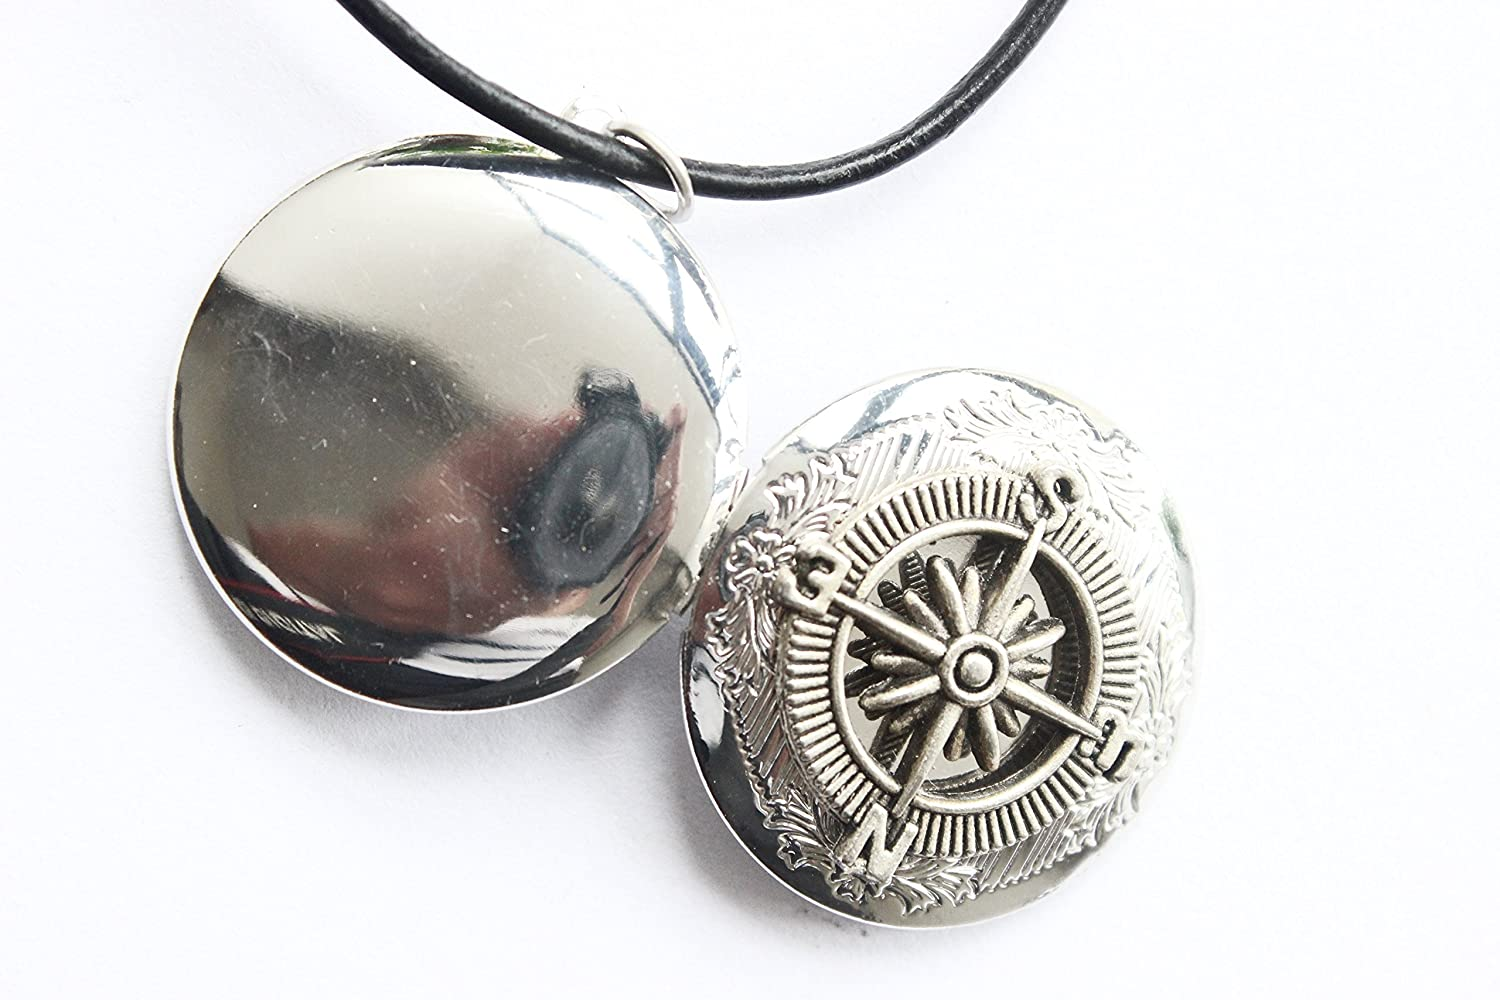 locket zoom lockets cancer hover engravable to heart cannot message secret do what